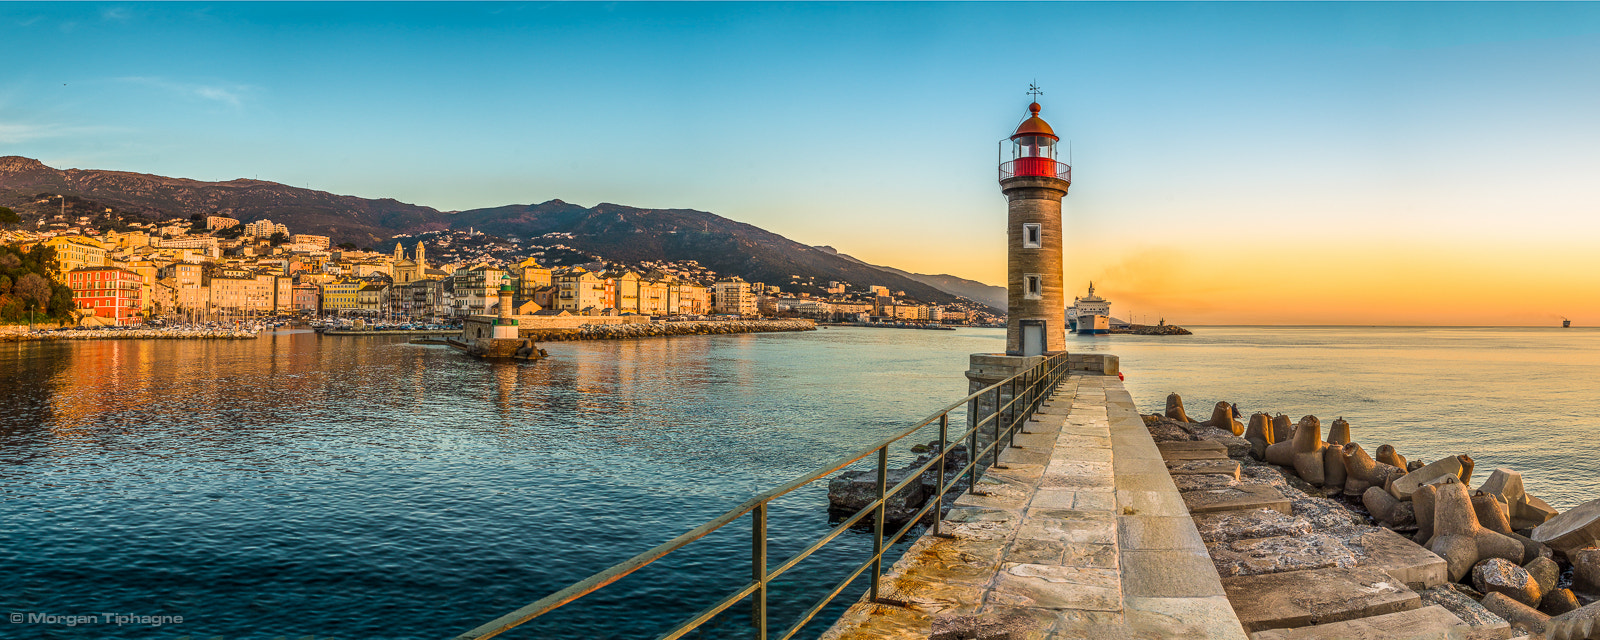 Photograph Panorama Sunrise on Bastia by Morgan Tiphagne on 500px